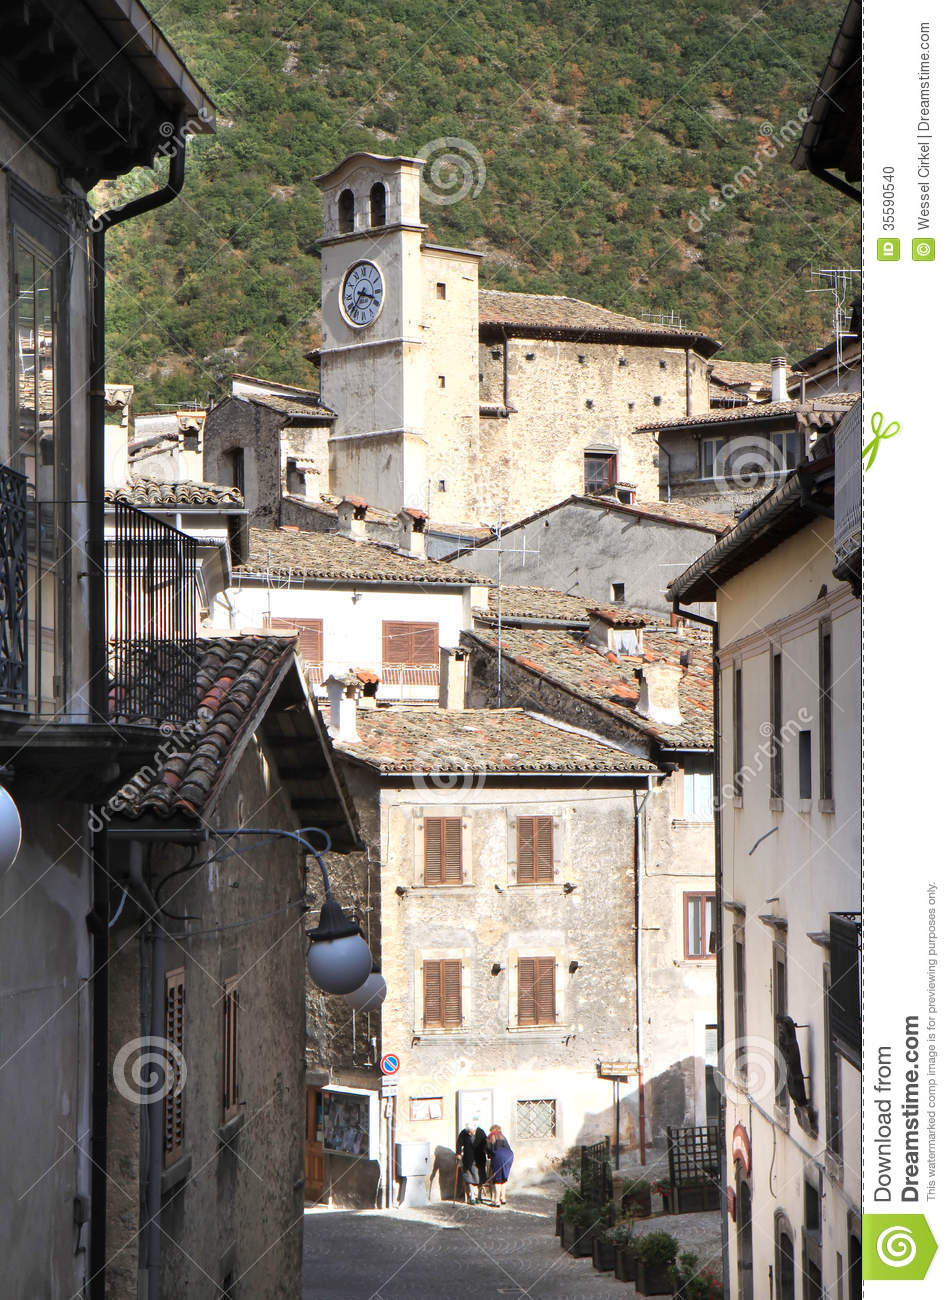 Old Women In Narrow Streets In Scanno Italy Editorial Image  Image 35590540